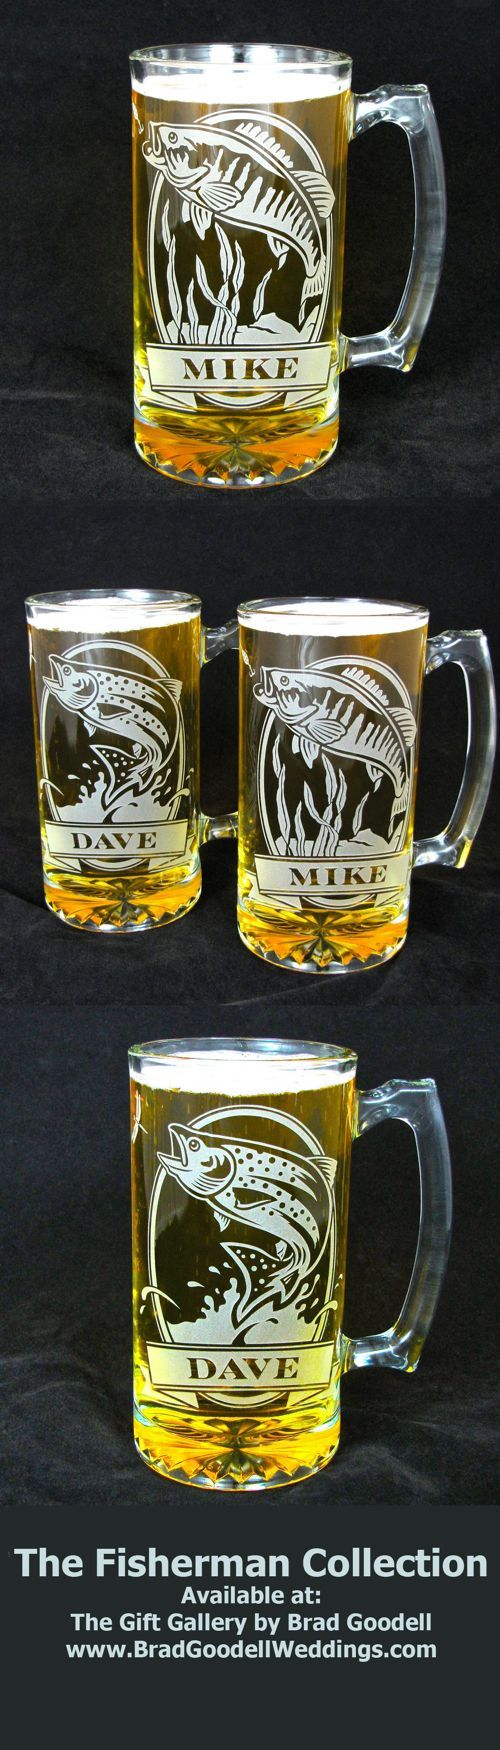 Personalized beer mugs with trout and bass.  Great gifts for Anglers!  Available at The Gift Gallery by Brad Goodell  --  www.BradGoodellWeddings.com